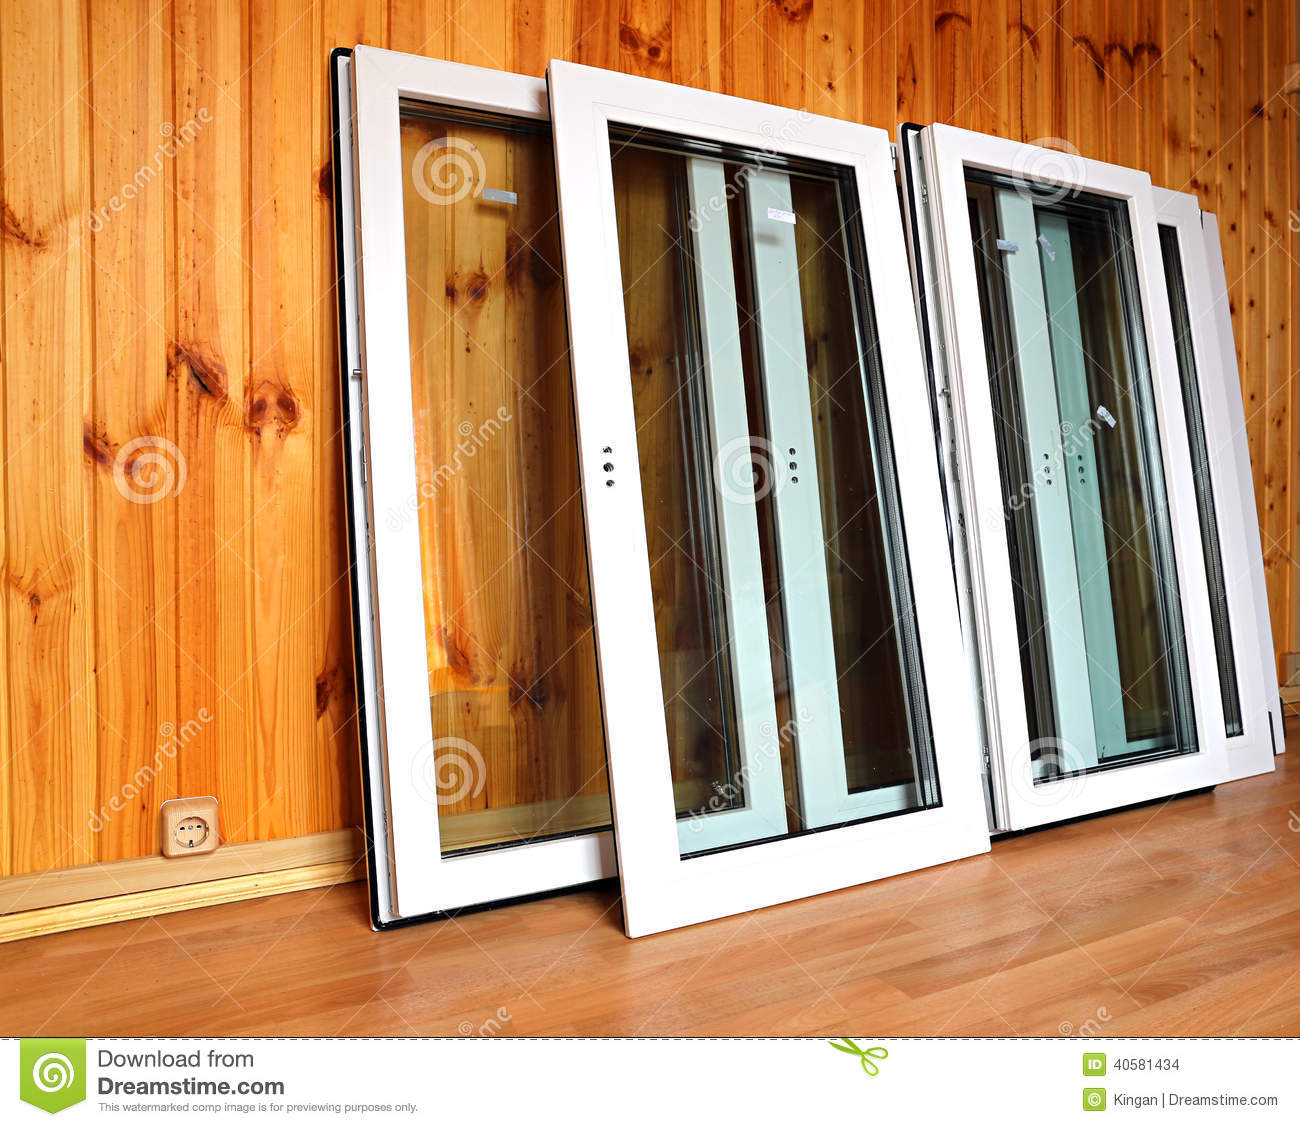 Installing plastic windows in a wooden house do it yourself 95